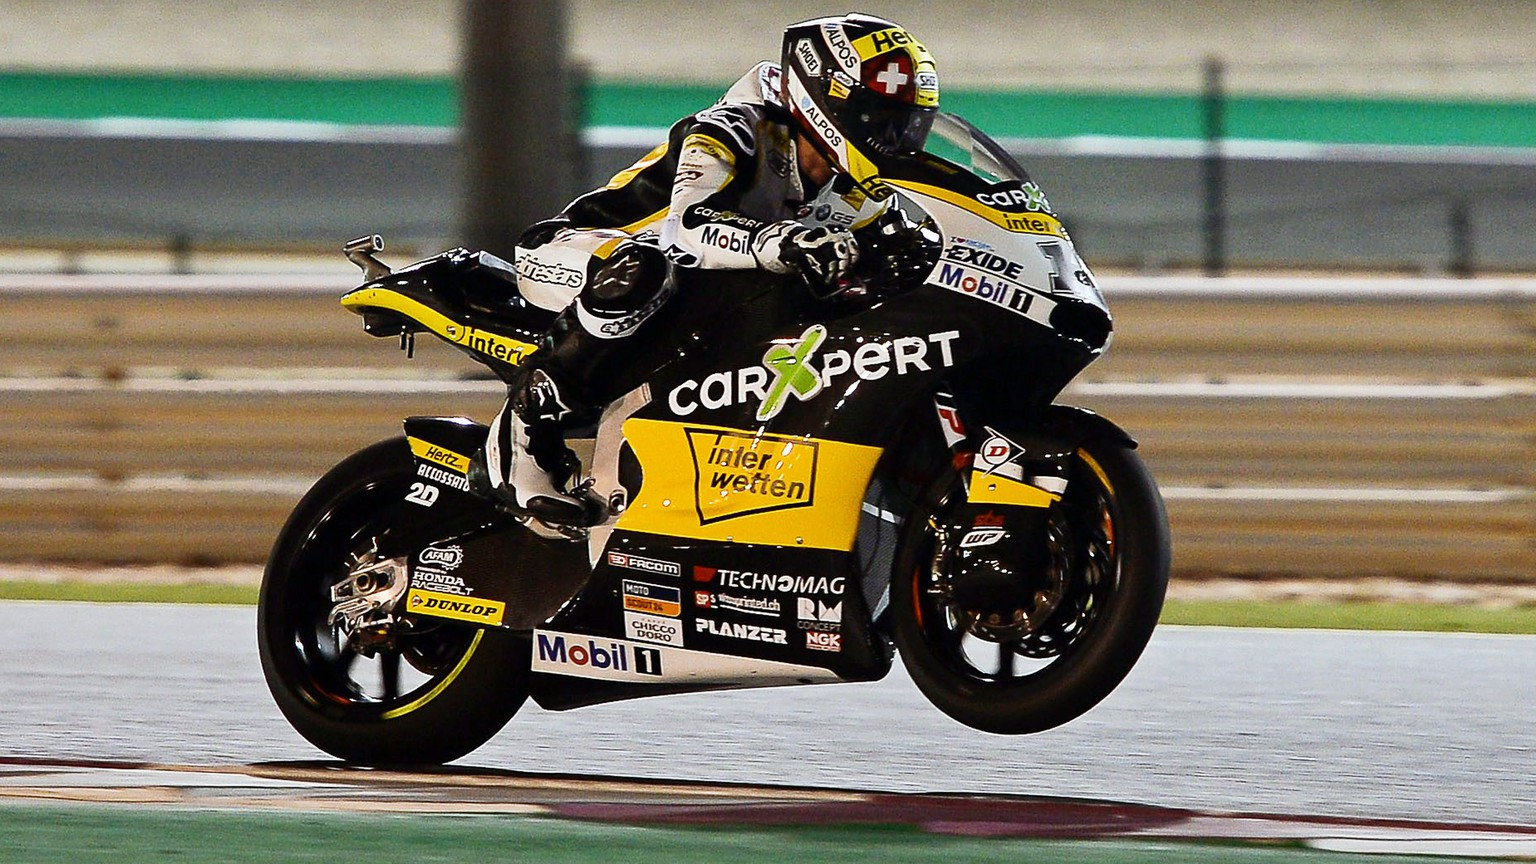 epa05868380 Swiss Moto2 rider Thomas Luthi of the CarXpert Interwetten team in action during a free practice session for the Motorcycling Grand Prix of Qatar at Al Losail International Circuit in Doha, Qatar, 24 March 2017. The 2017 MotoGP World Championship season's first race will be held in Doha on 26 March.  EPA/NOUSHAD THEKKAYIL